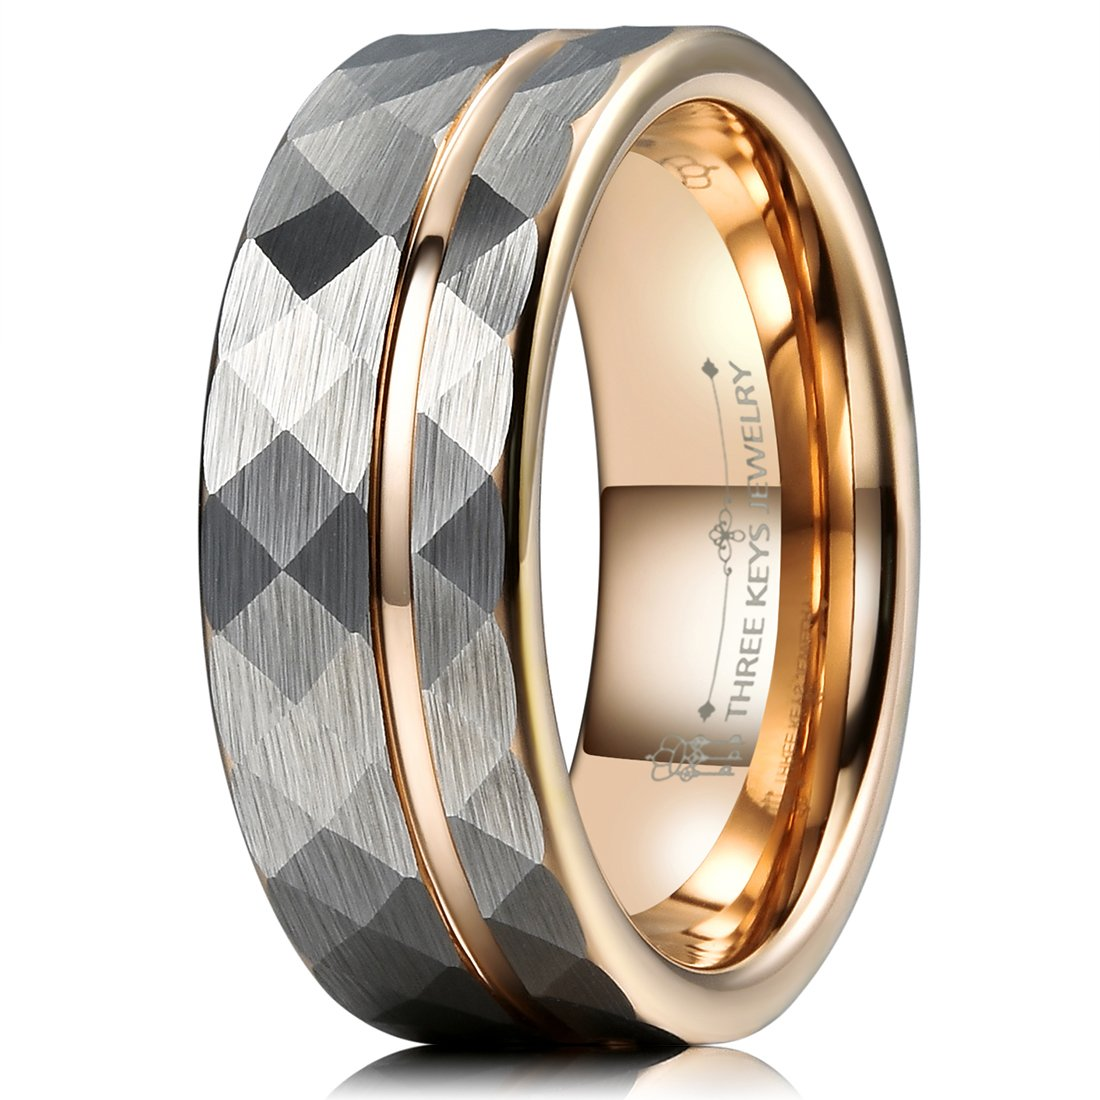 Three Keys Jewelry 8mm Hammered Brushed Silver Tungsten Wedding Ring with Rose Gold Interior & Stripe Wedding Band Engagement Ring Size 10